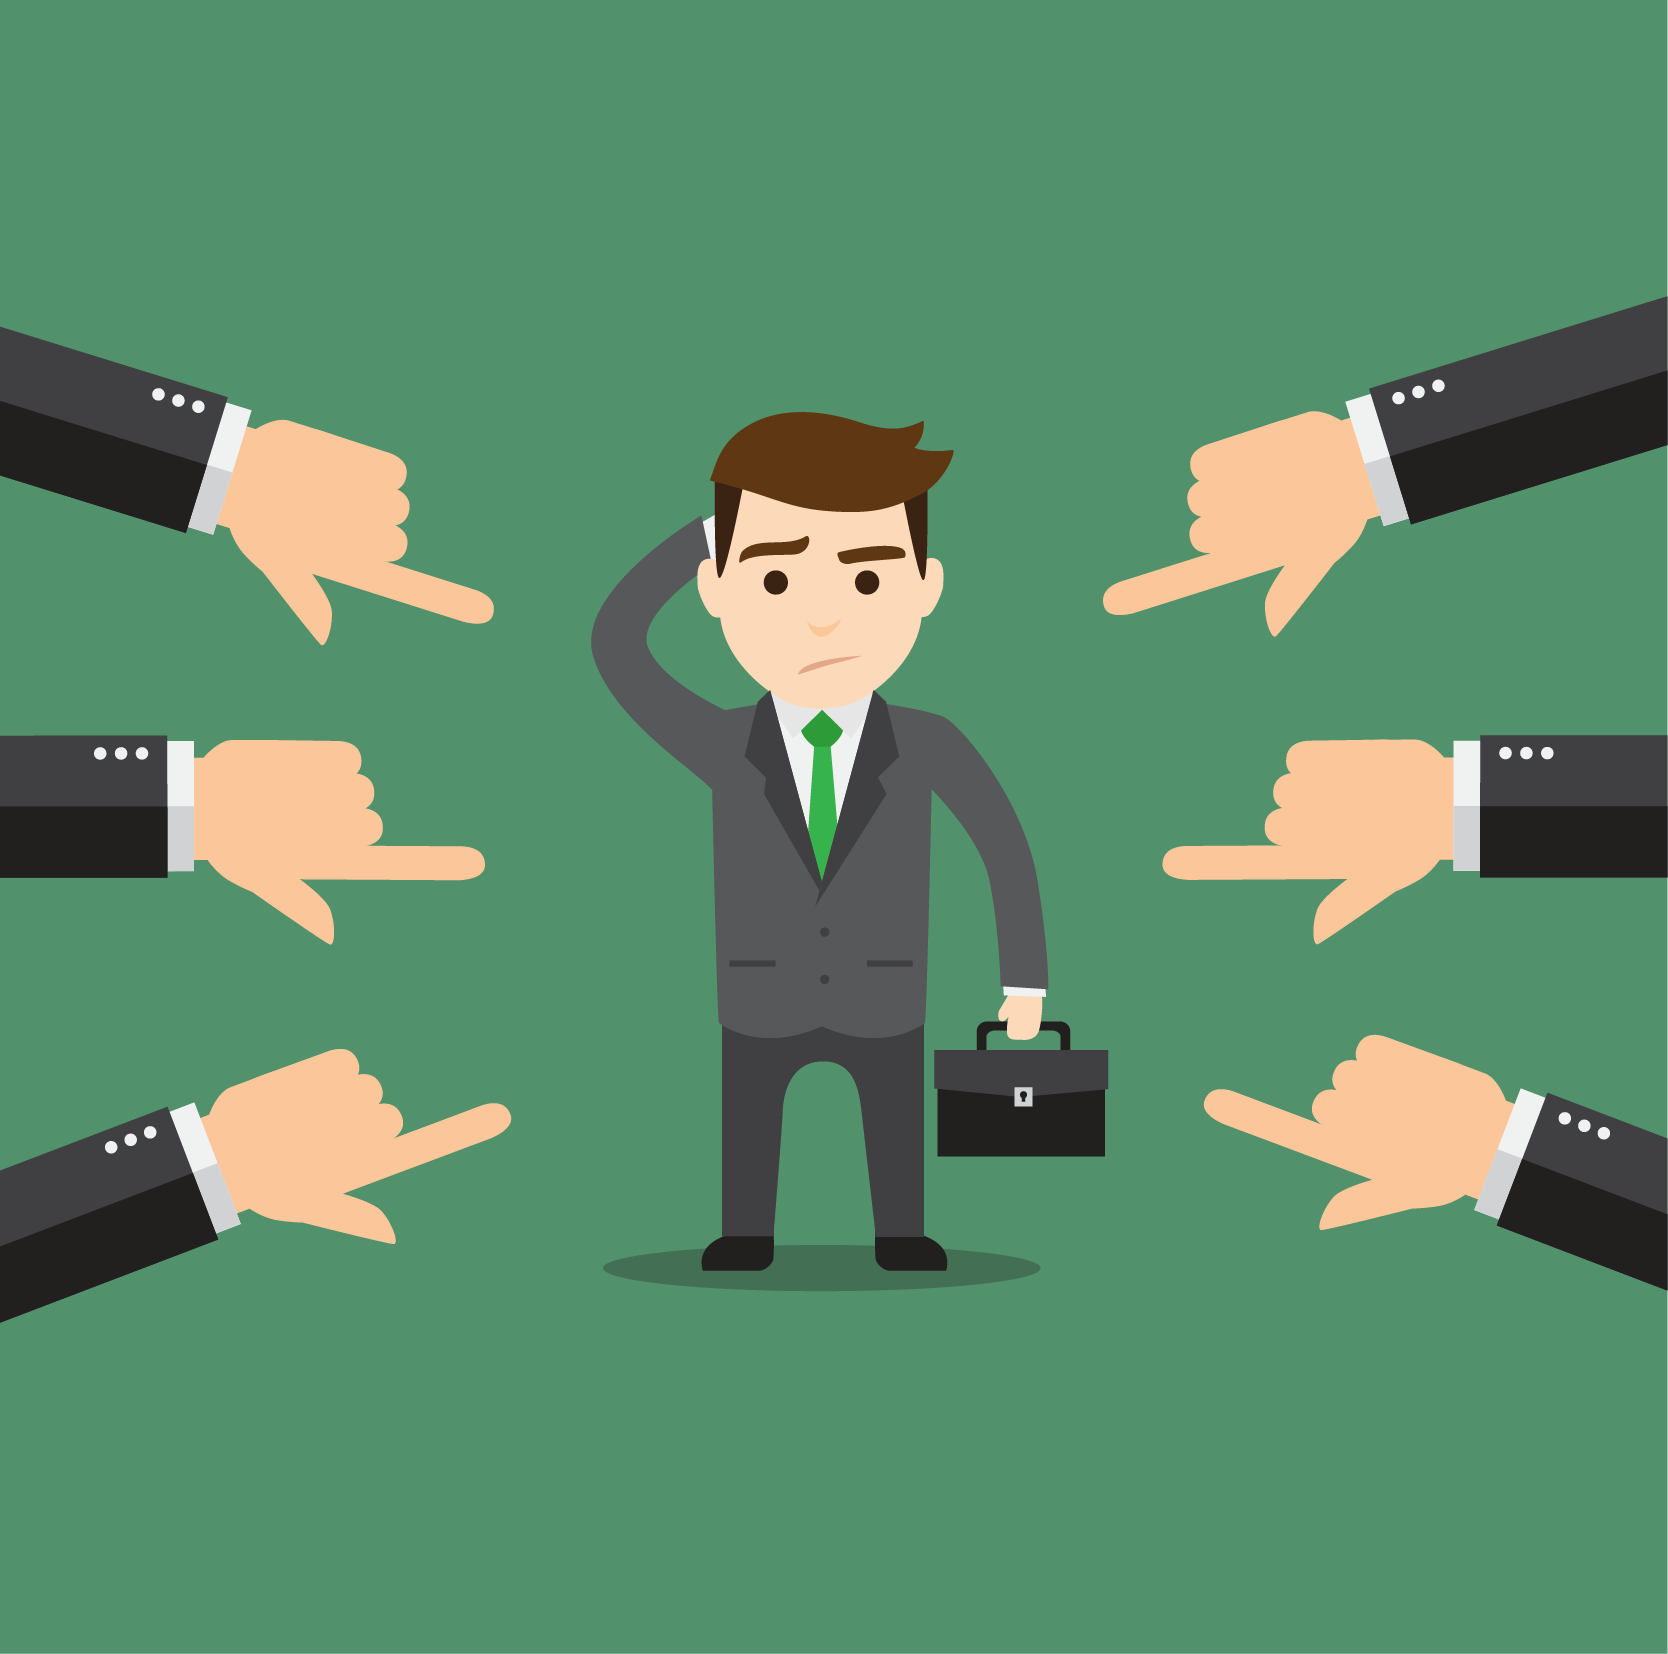 illustration of a business man looking confused and hands pointing fingers at him